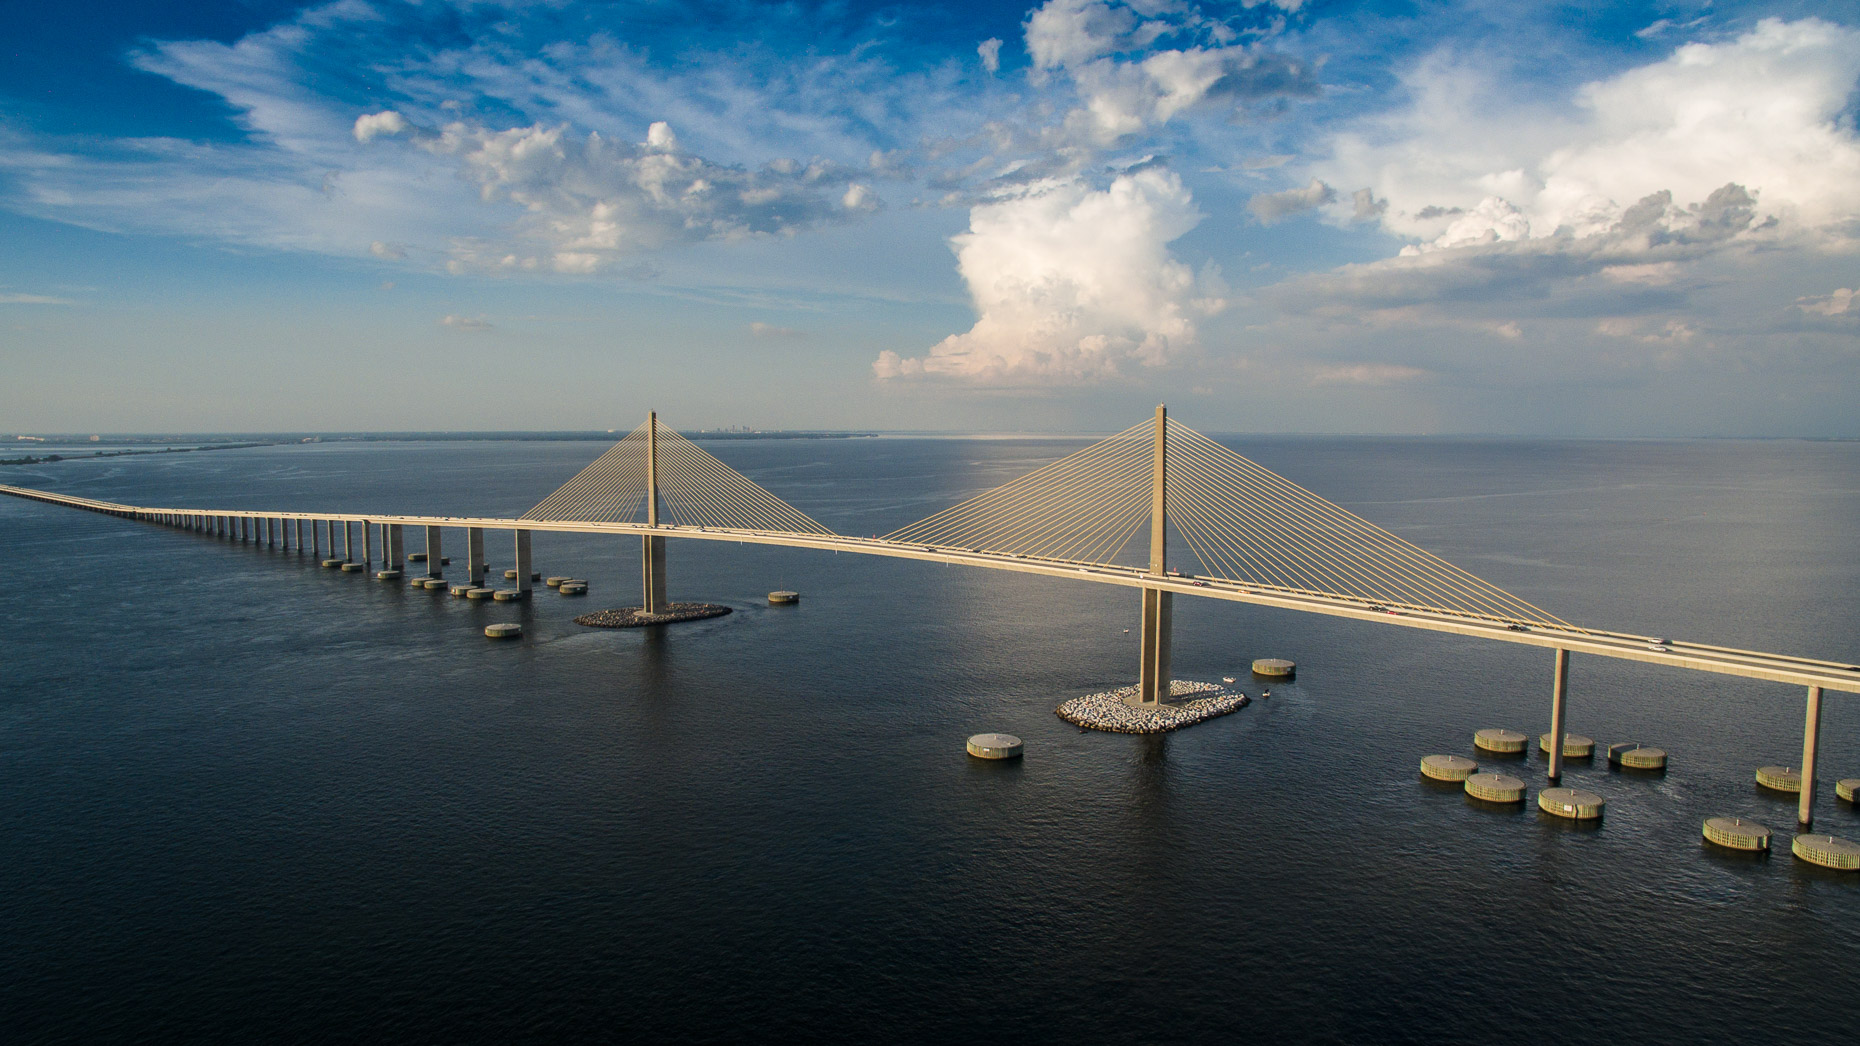 Aerial Skyway Bridge - Mark Borosch Photography - St. Petersburg, FL